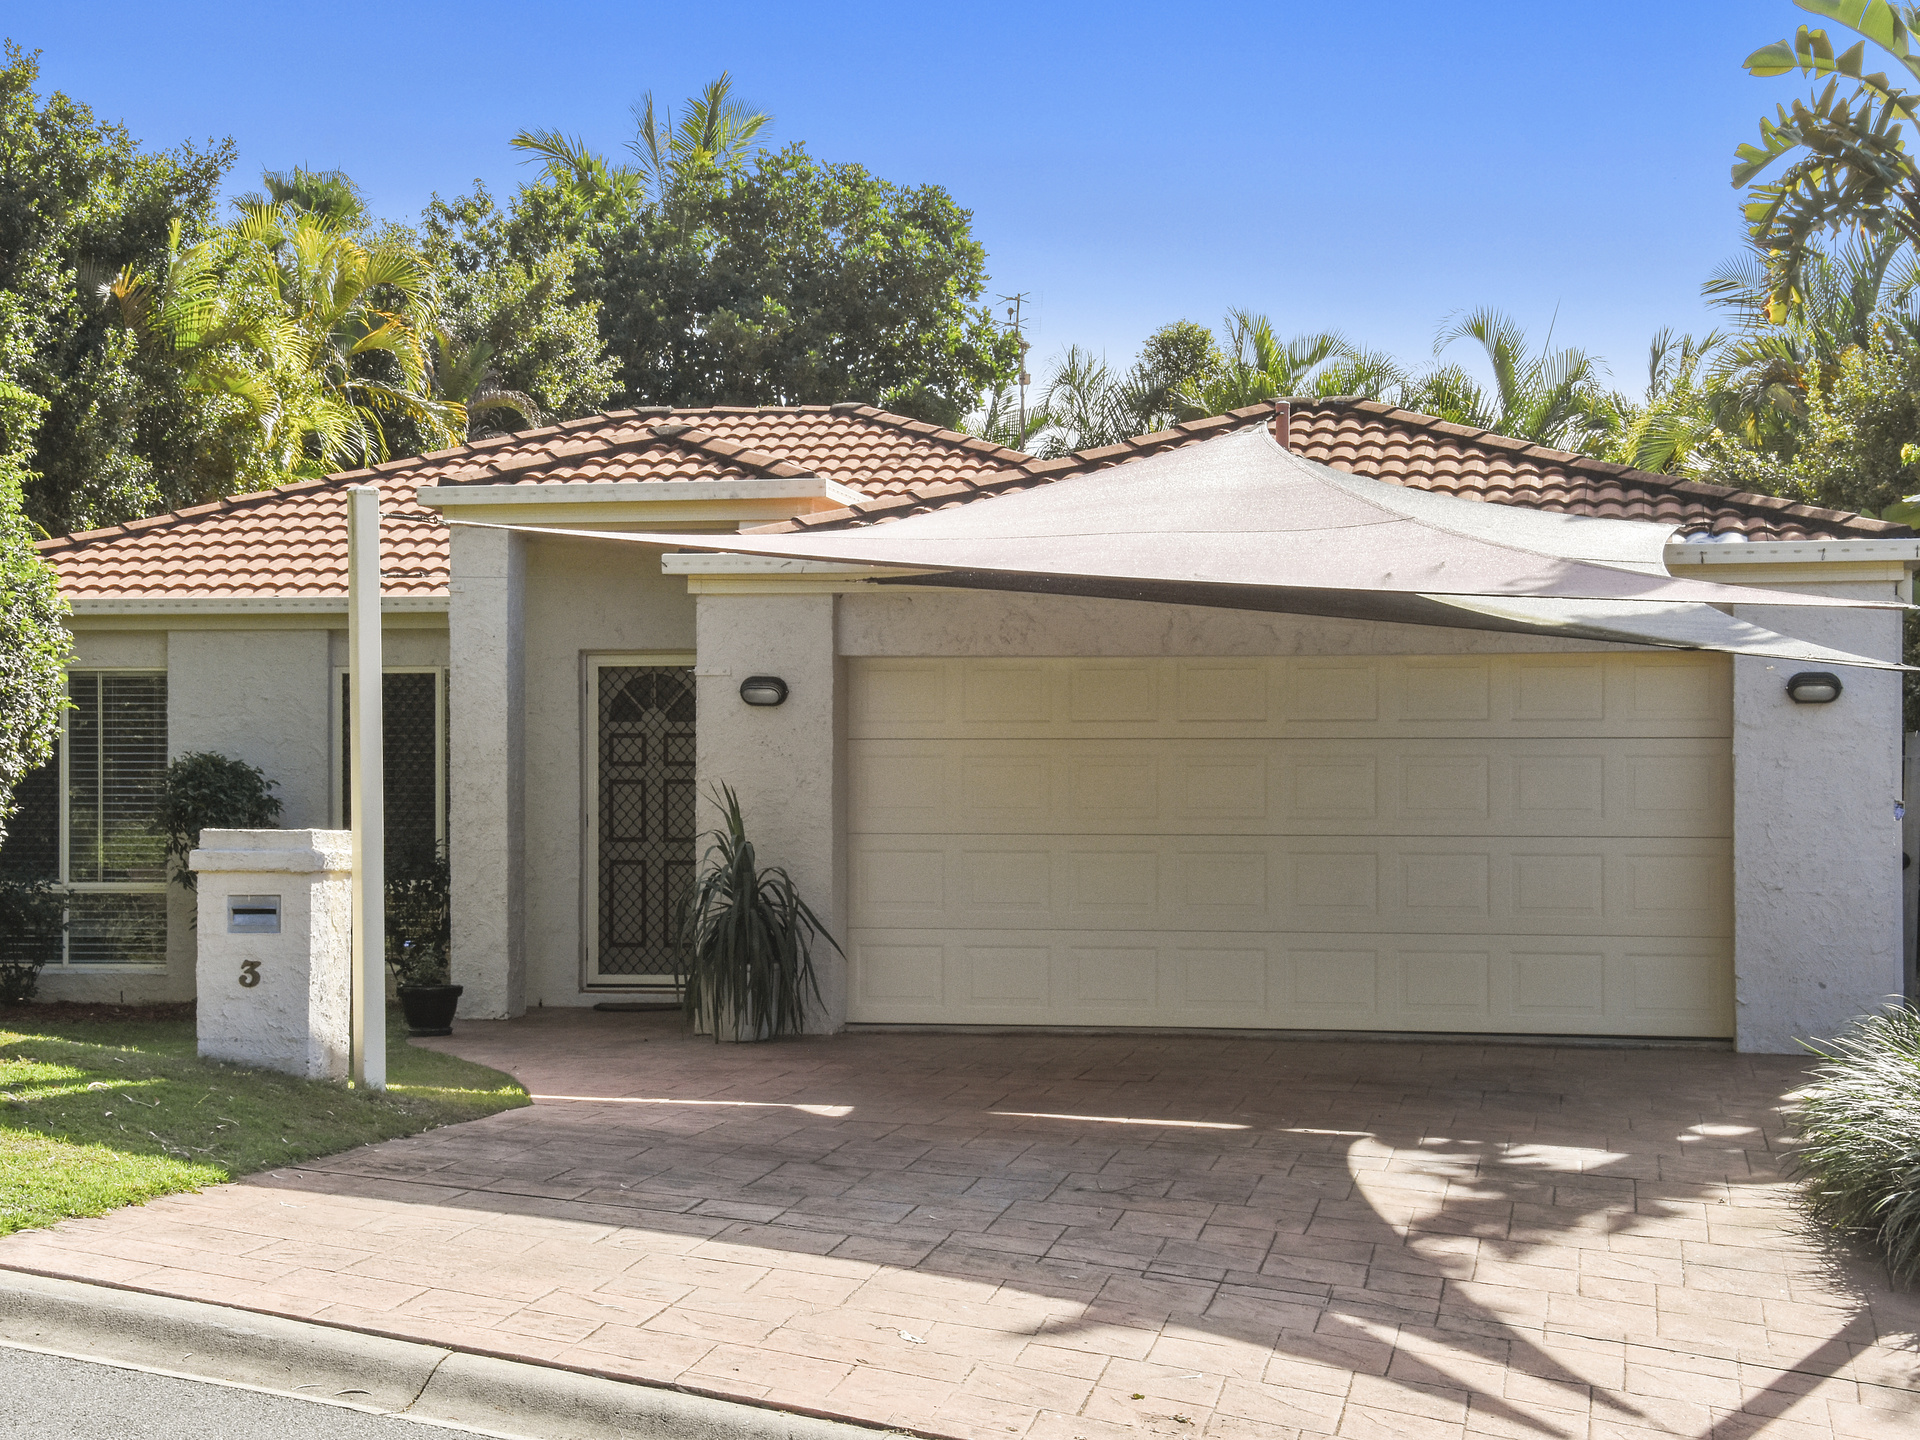 Real Estate   Gold Coast   Chevron Realty   013 Open2view Id518268 3 Action Place Upper Coomera